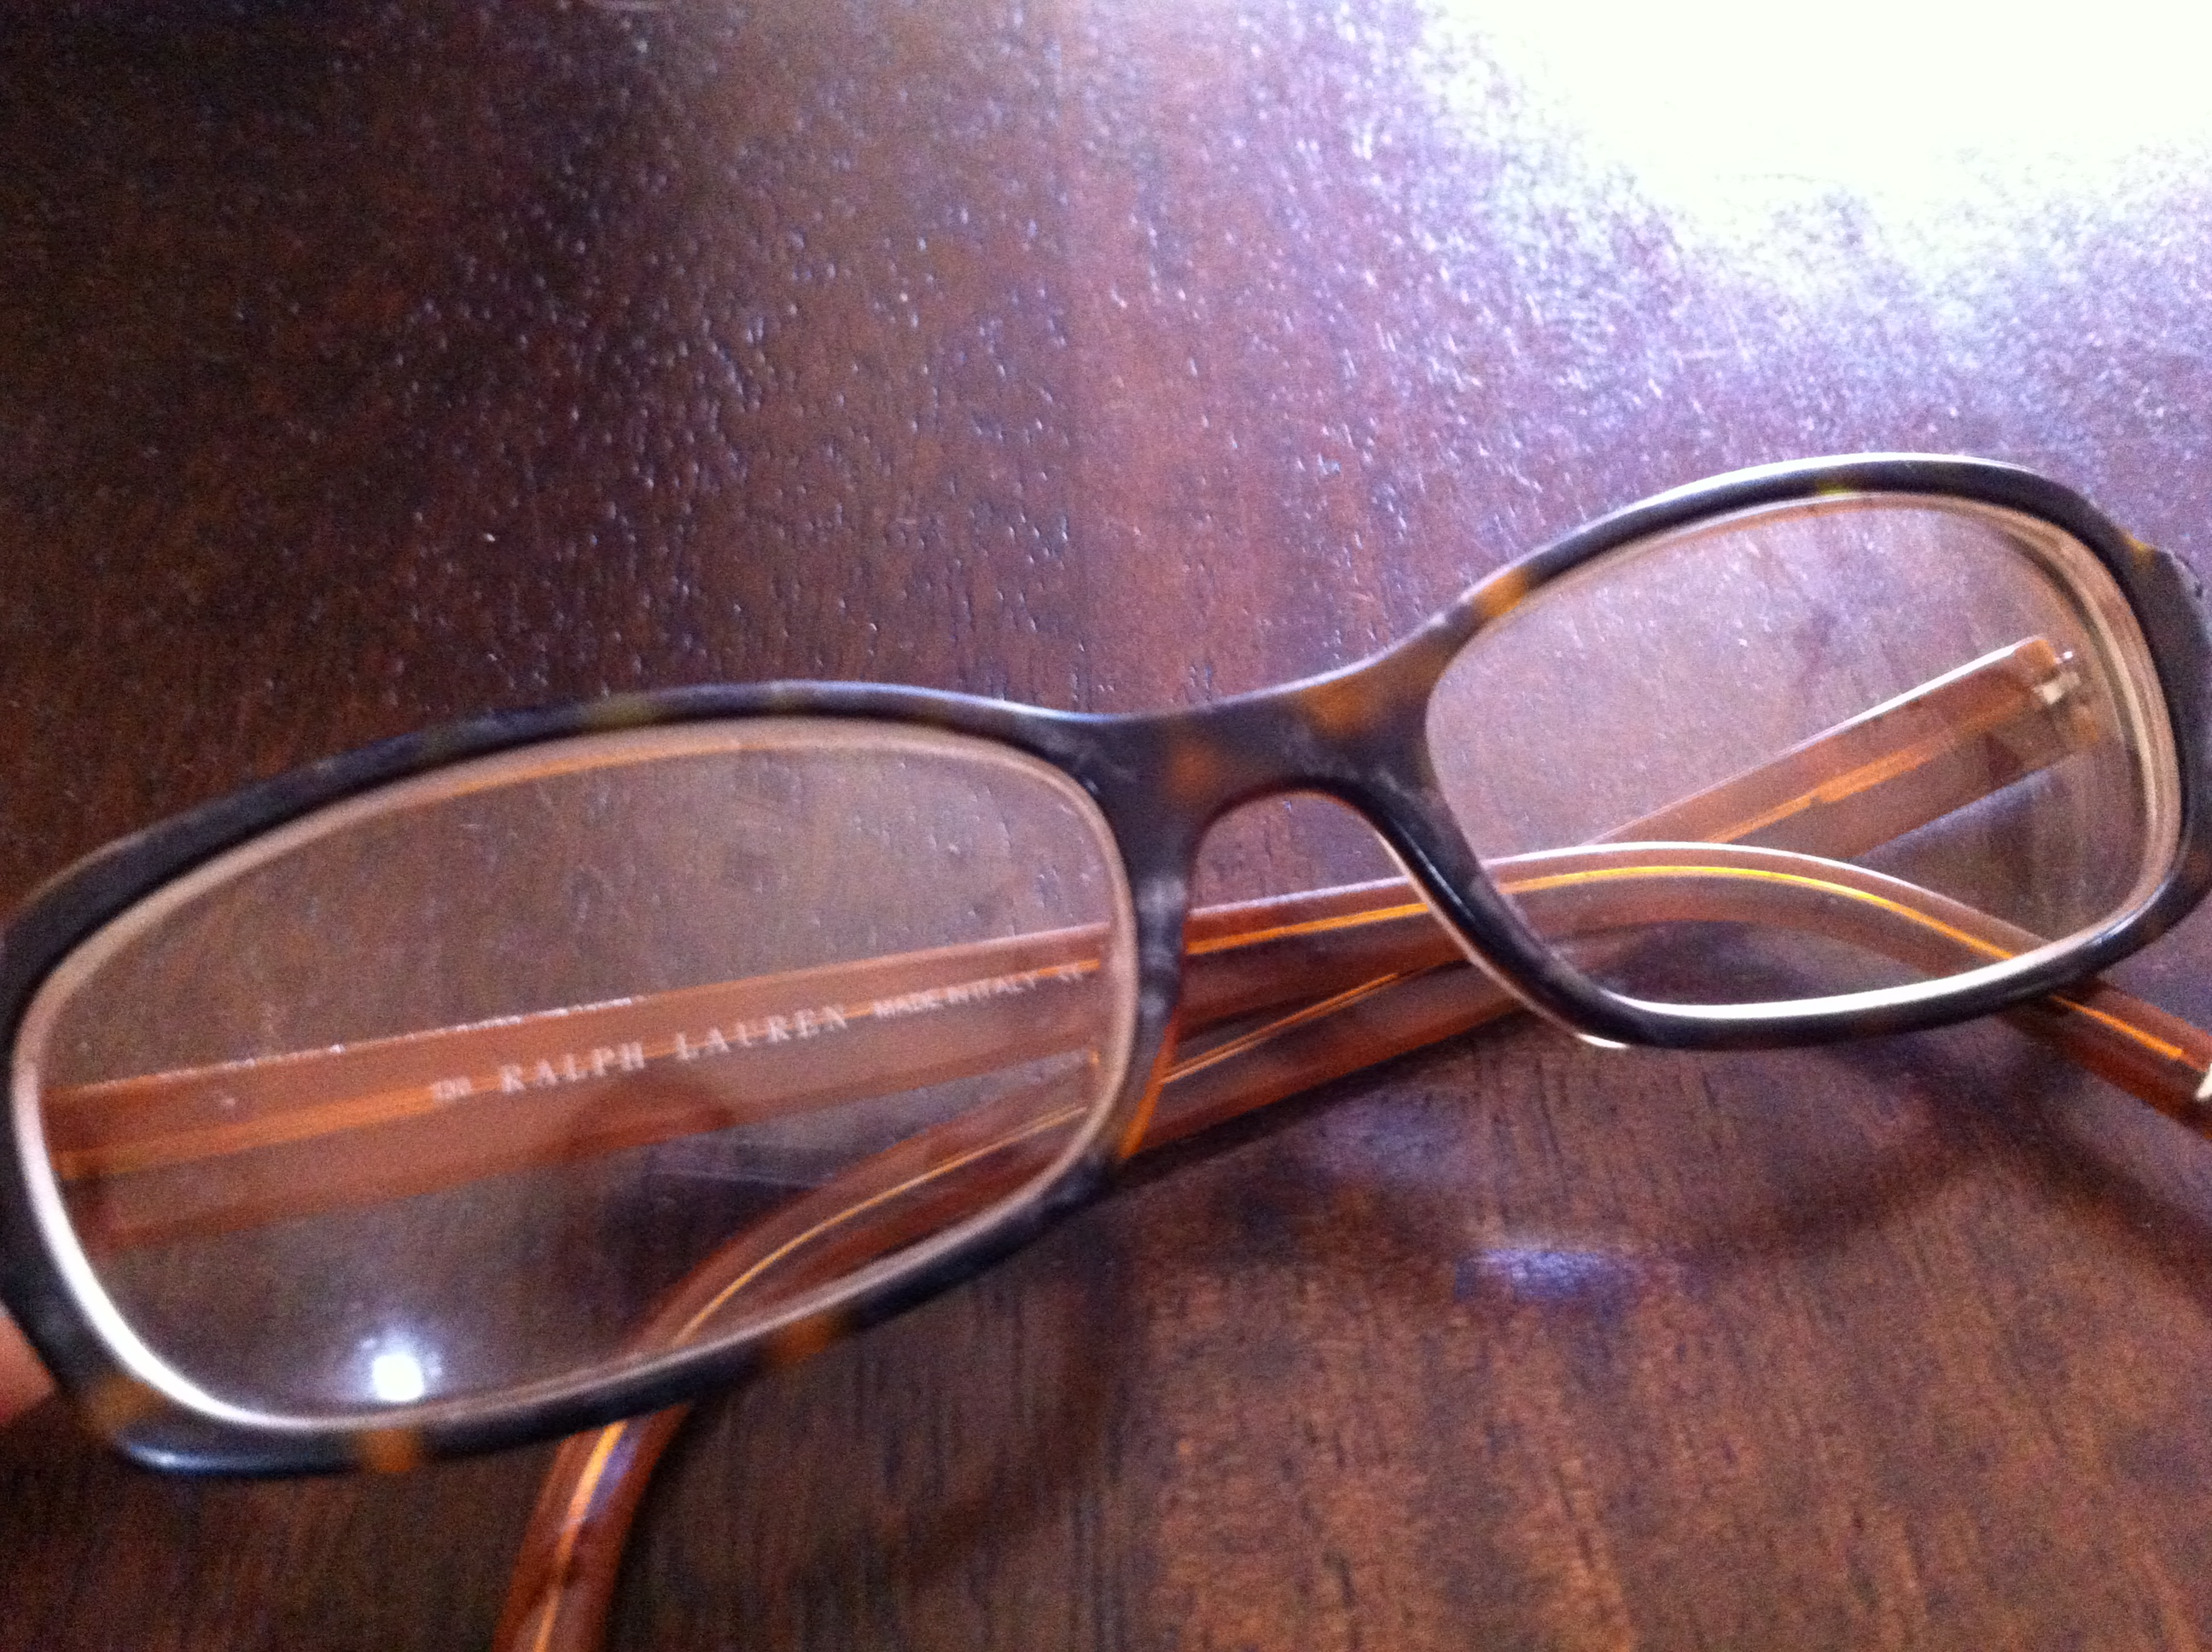 Glasses Frame Discoloration : white discoloration on plastic eyeglass frames While ...